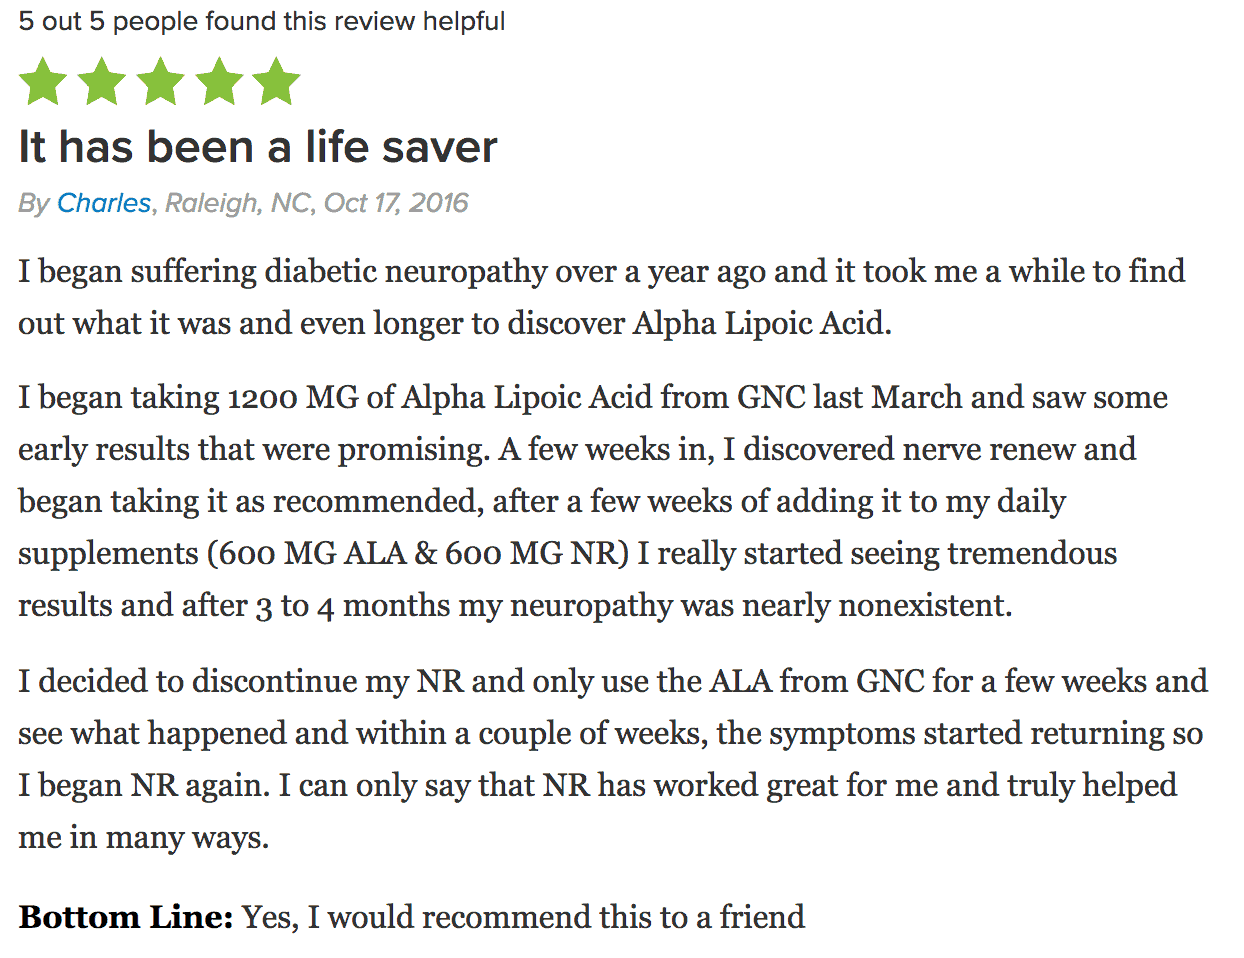 A satisfied customer shares their review of Nerve Renew.